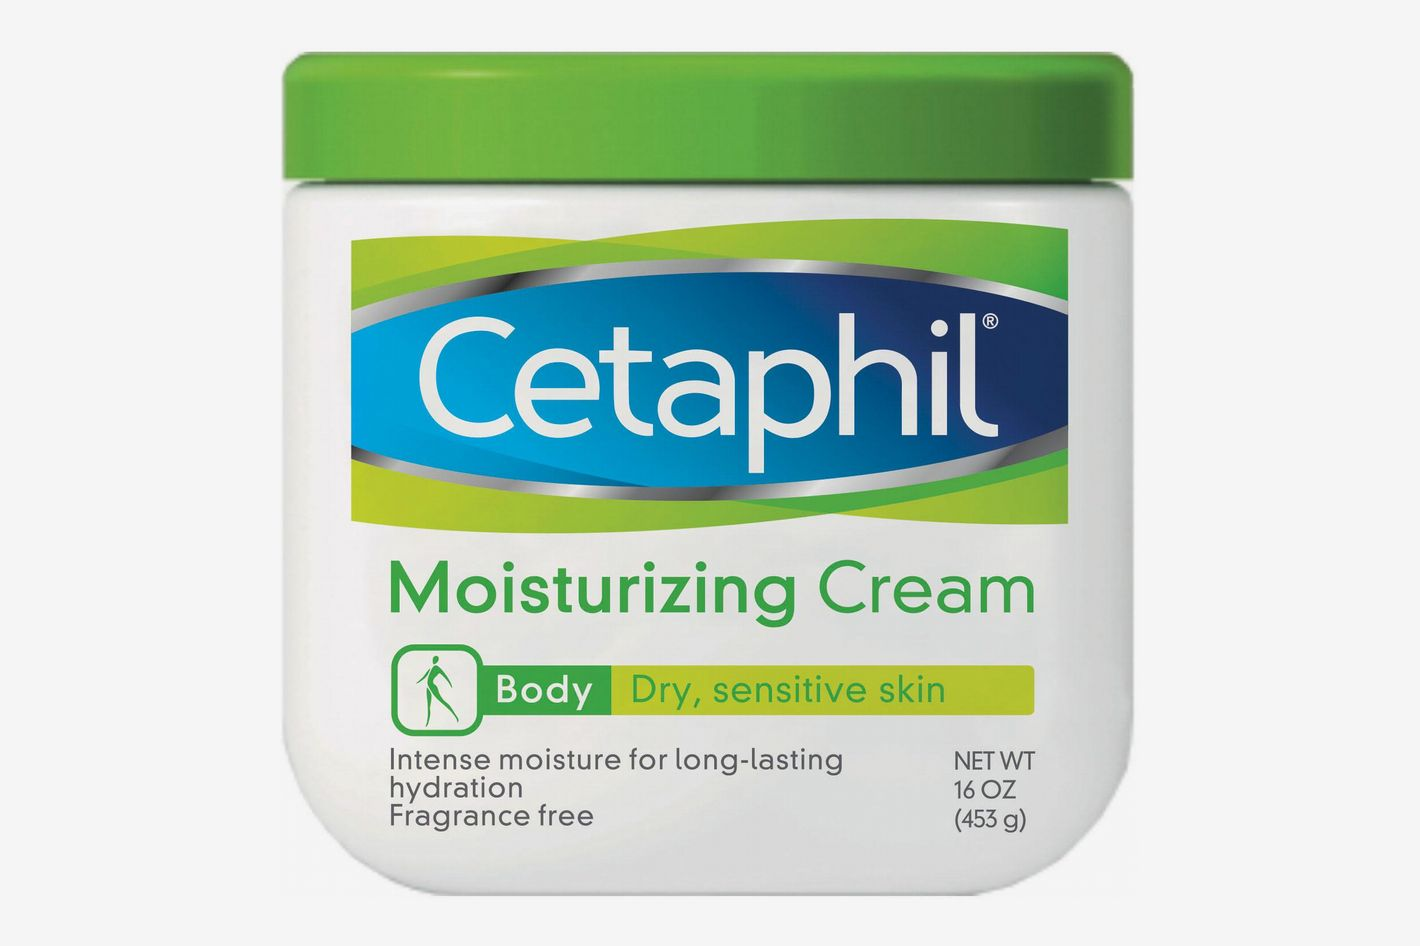 6b9a035d9f58 11 Best Moisturizers for Dry Skin 2019